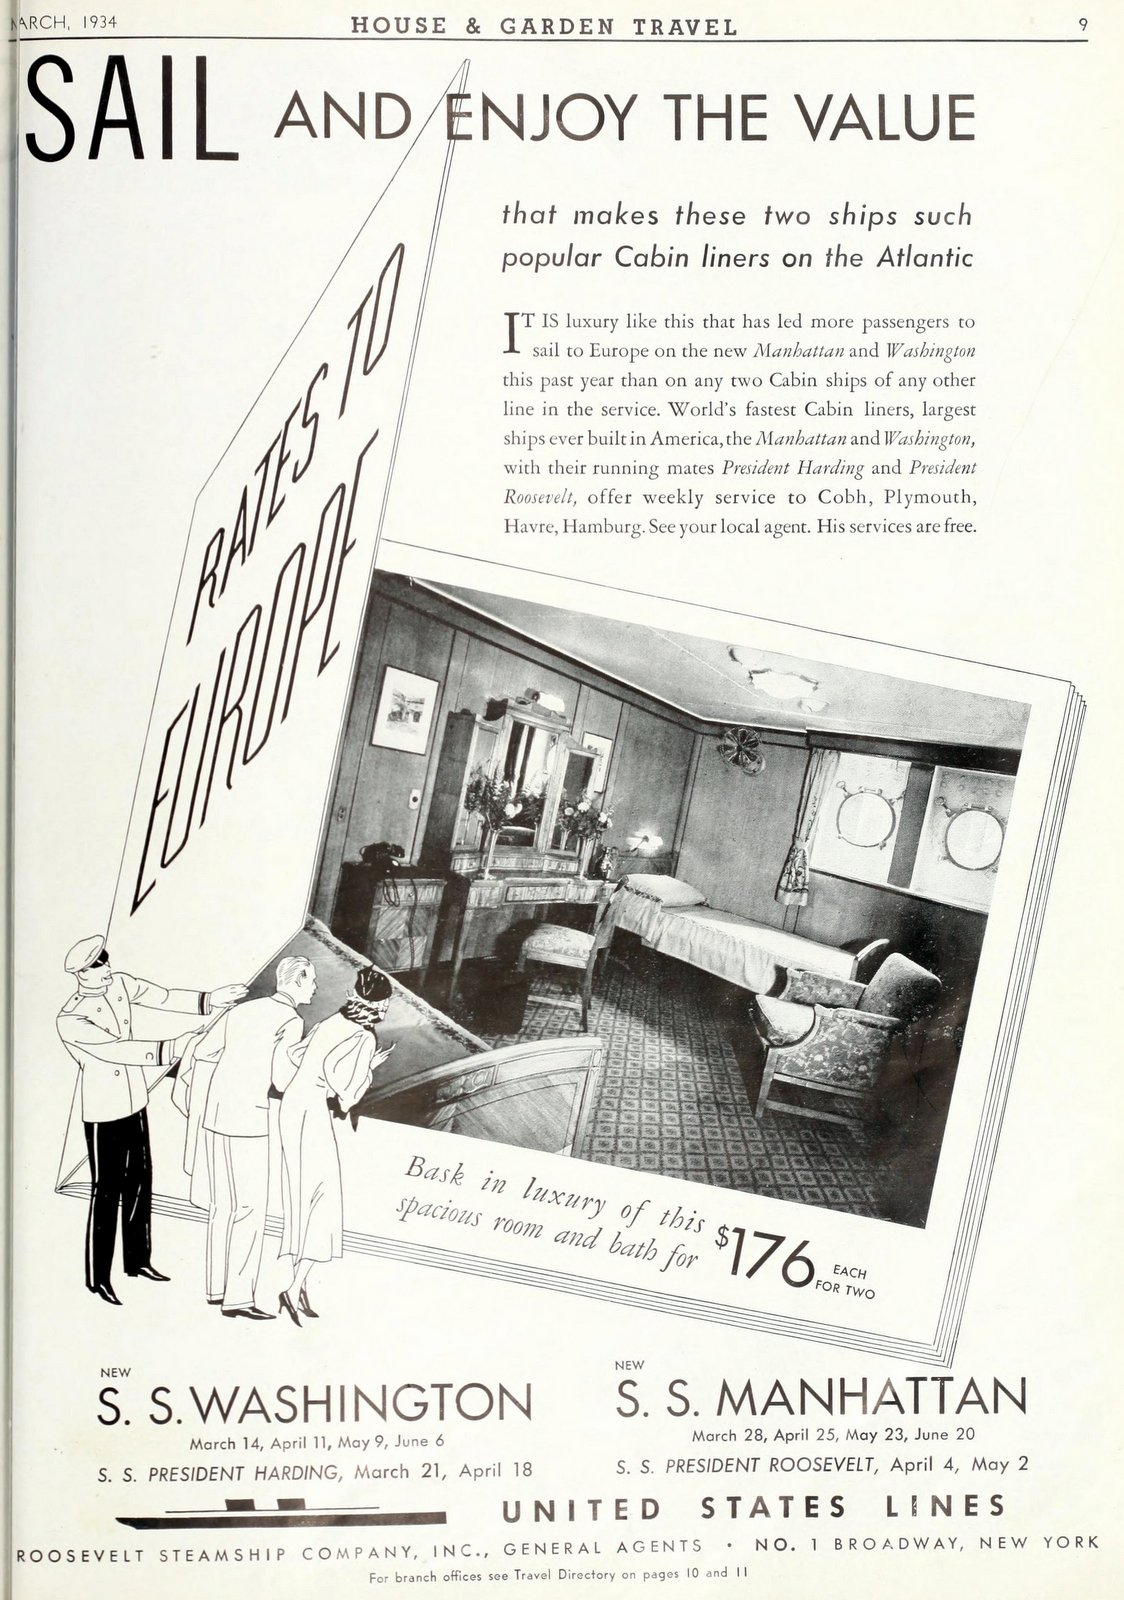 United States Lines - Vintage cruise ship cabins in 1934 (1)